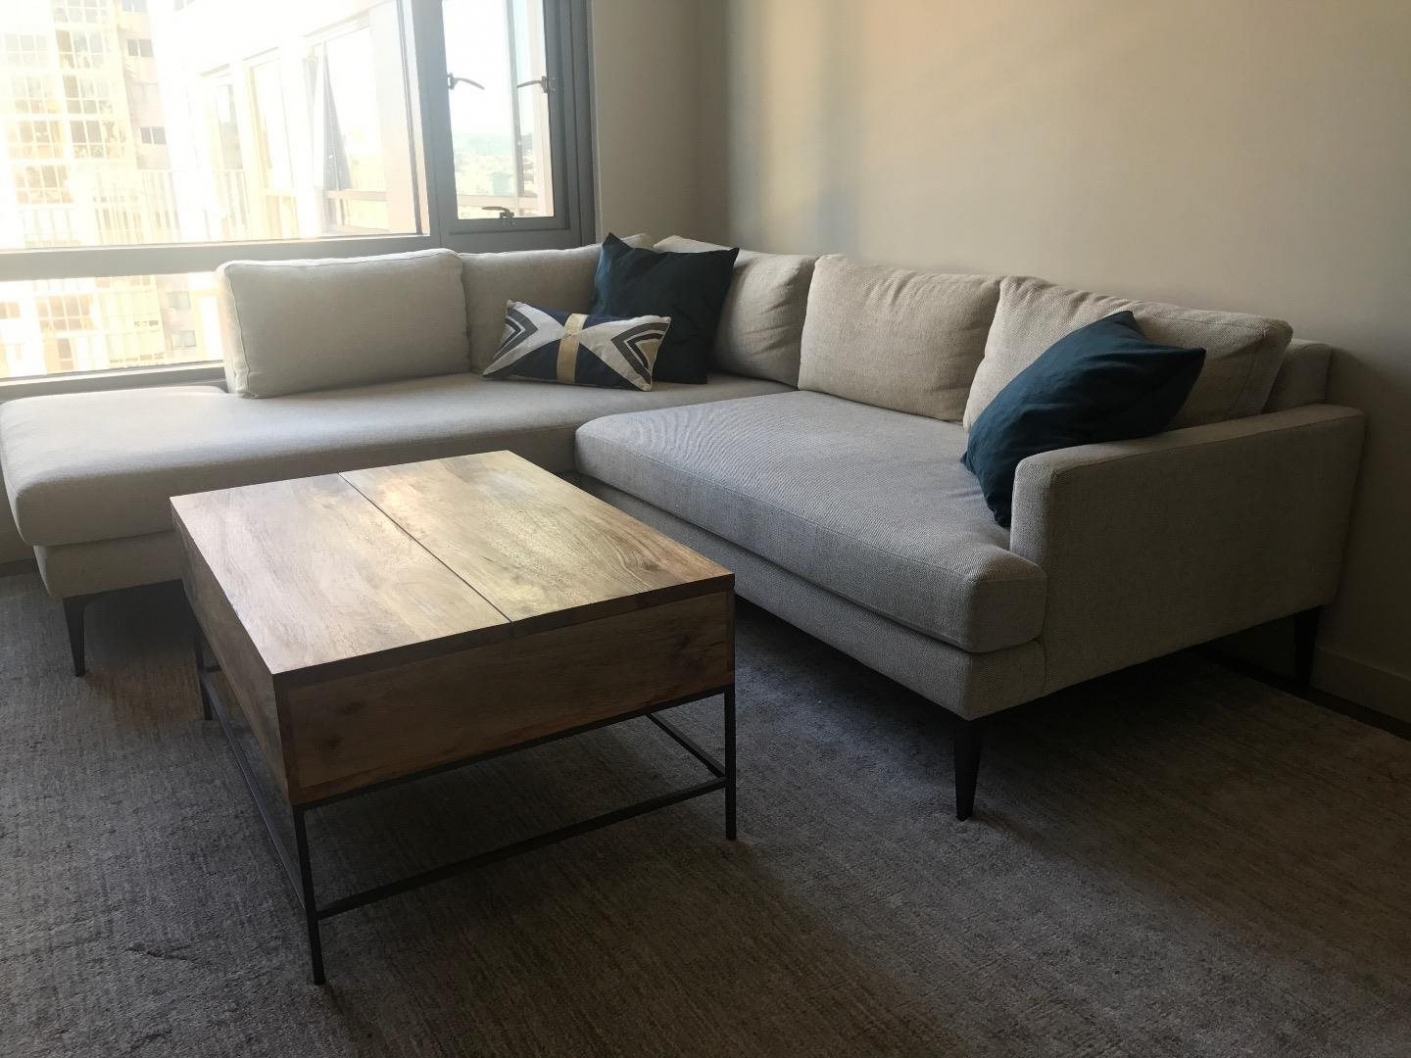 West Elm Chaises In Newest Furniture: West Elm Andes Terminal Chaise Sectional Couch: For (View 5 of 15)